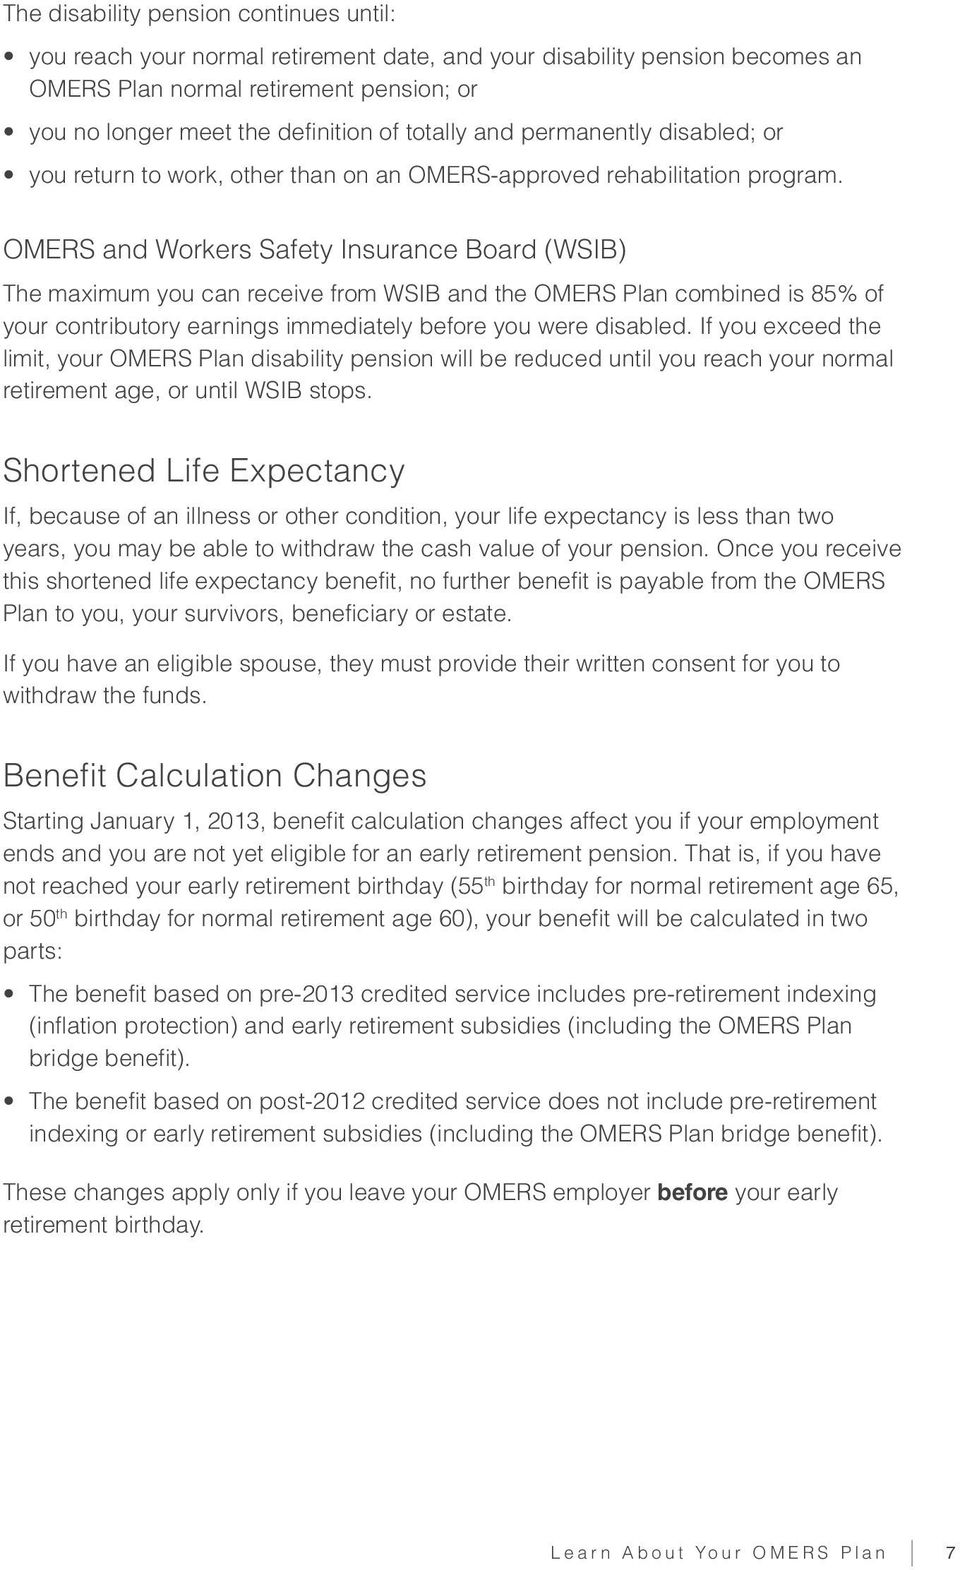 OMERS and Workers Safety Insurance Board (WSIB) The maximum you can receive from WSIB and the OMERS Plan combined is 85% of your contributory earnings immediately before you were disabled.